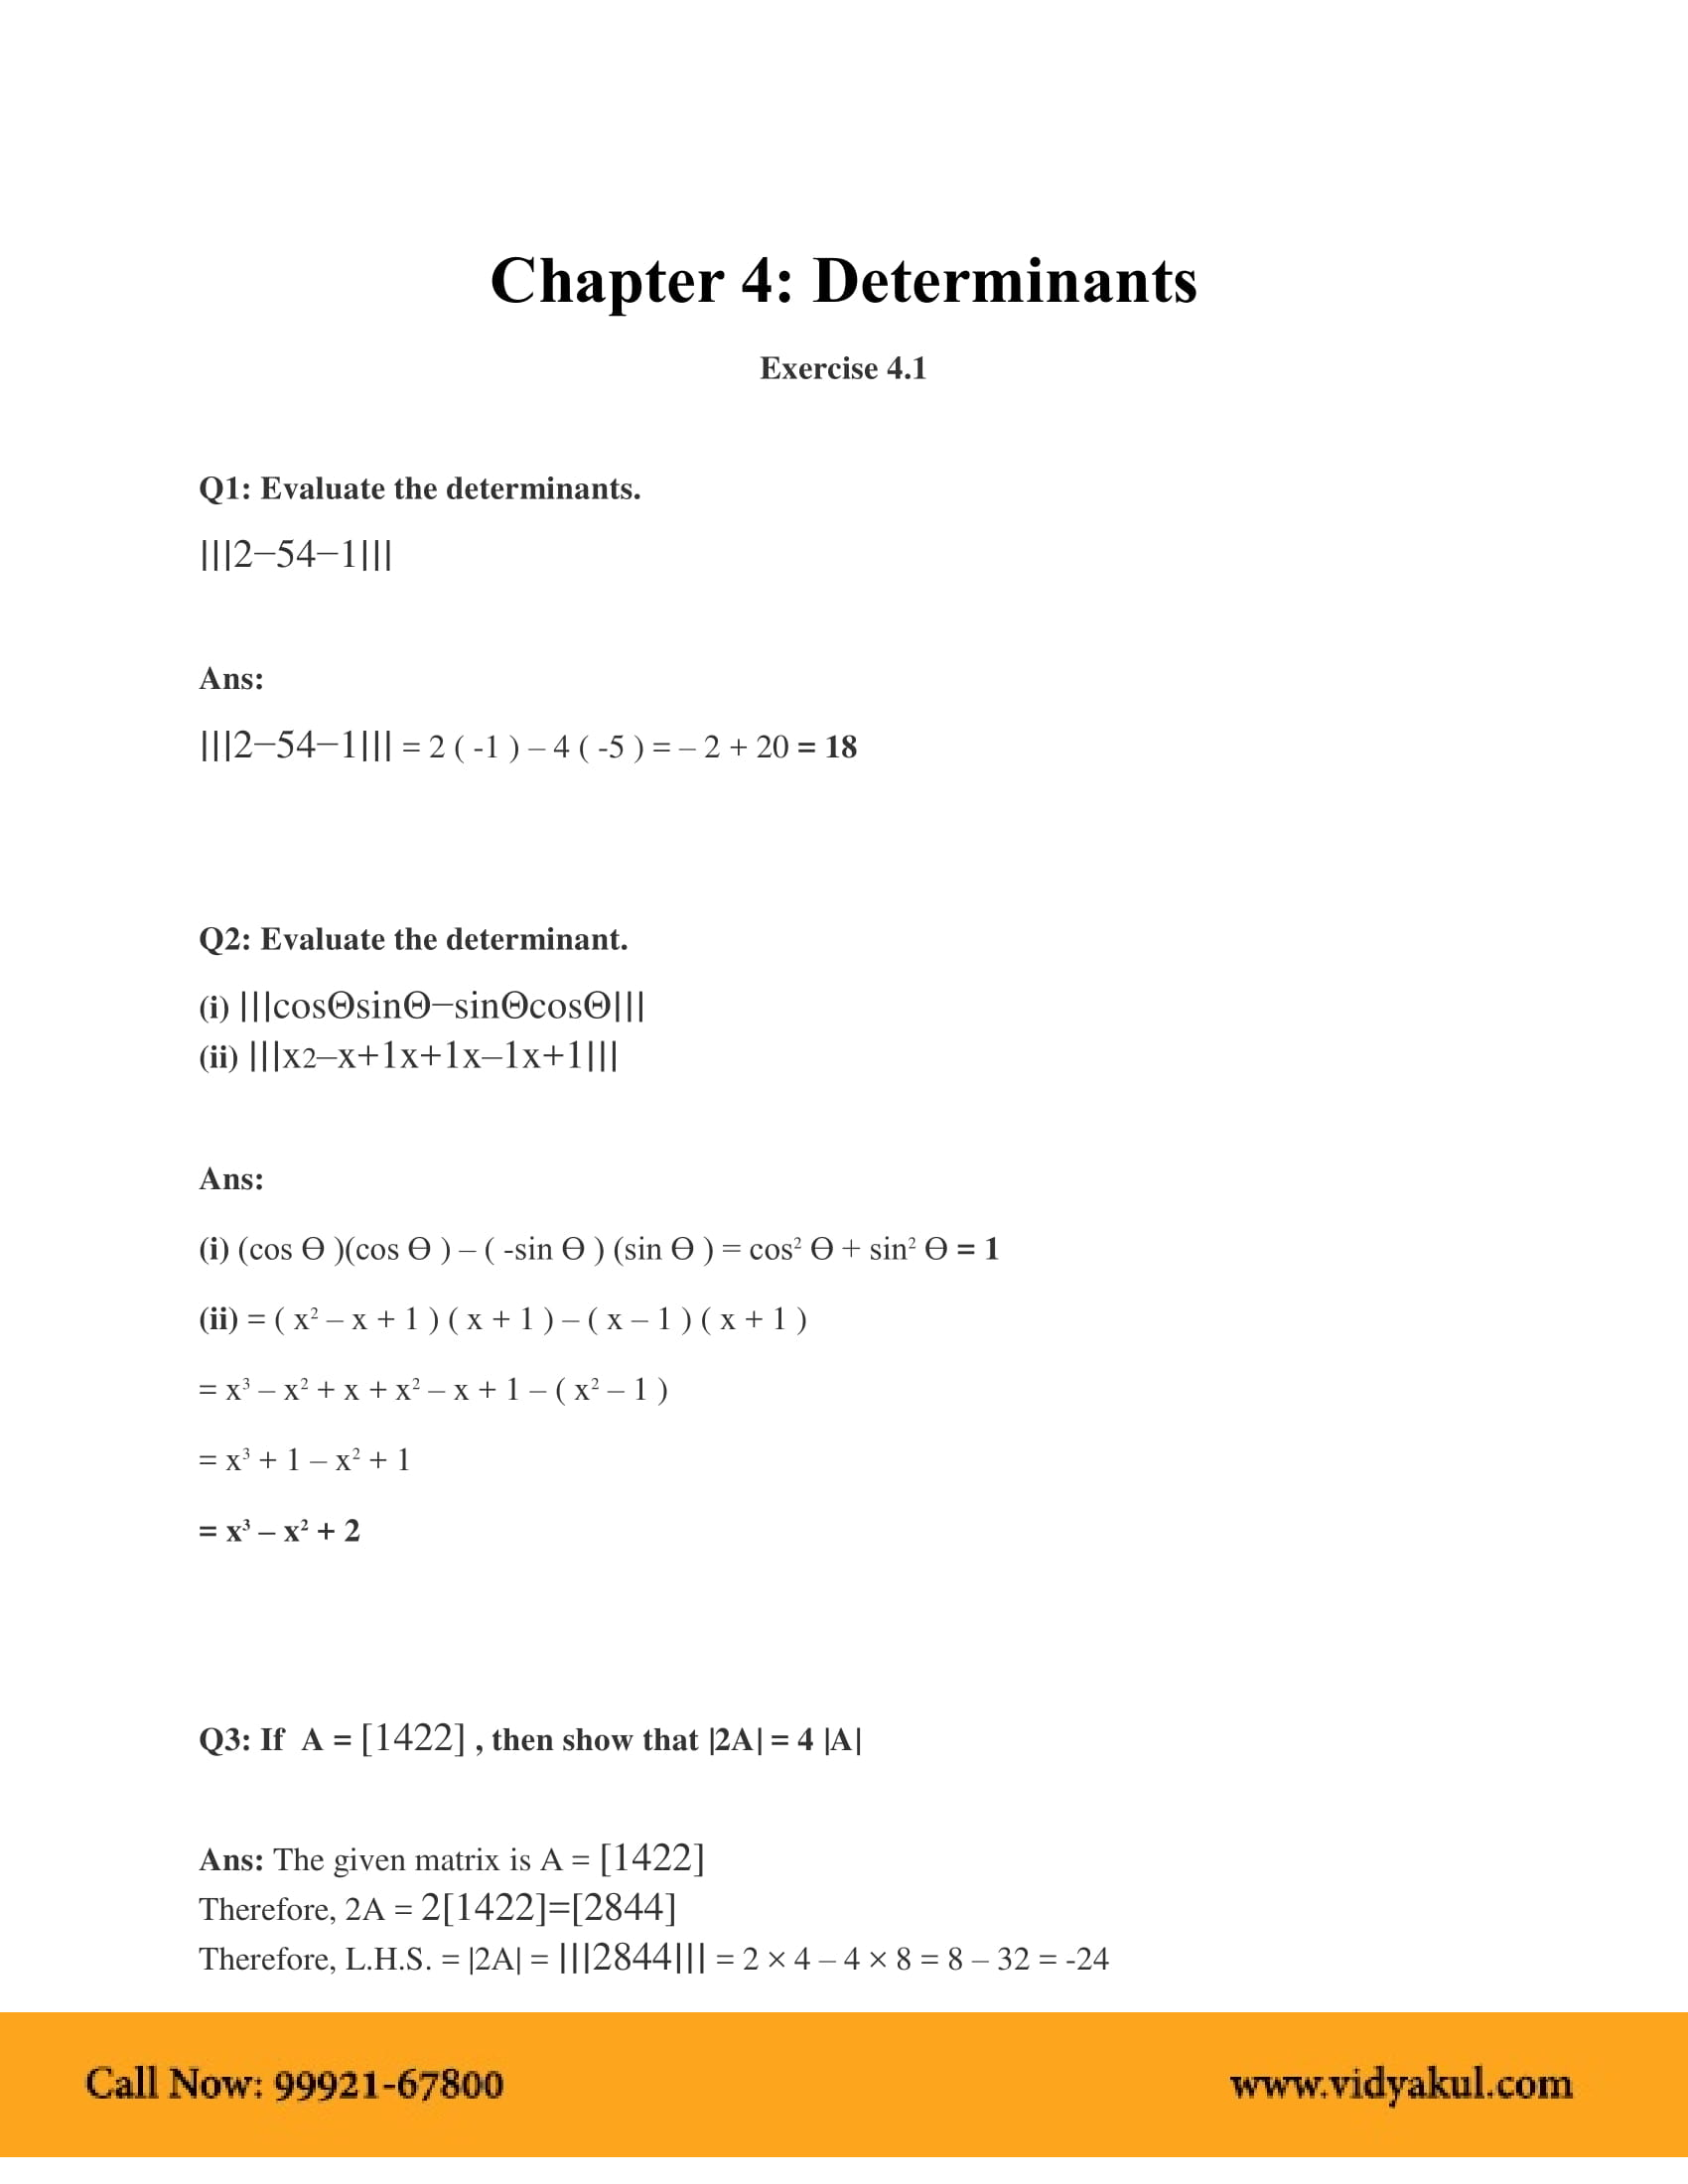 NCERT Solutions for Class 12 Maths Chapter 4 | Vidyakul